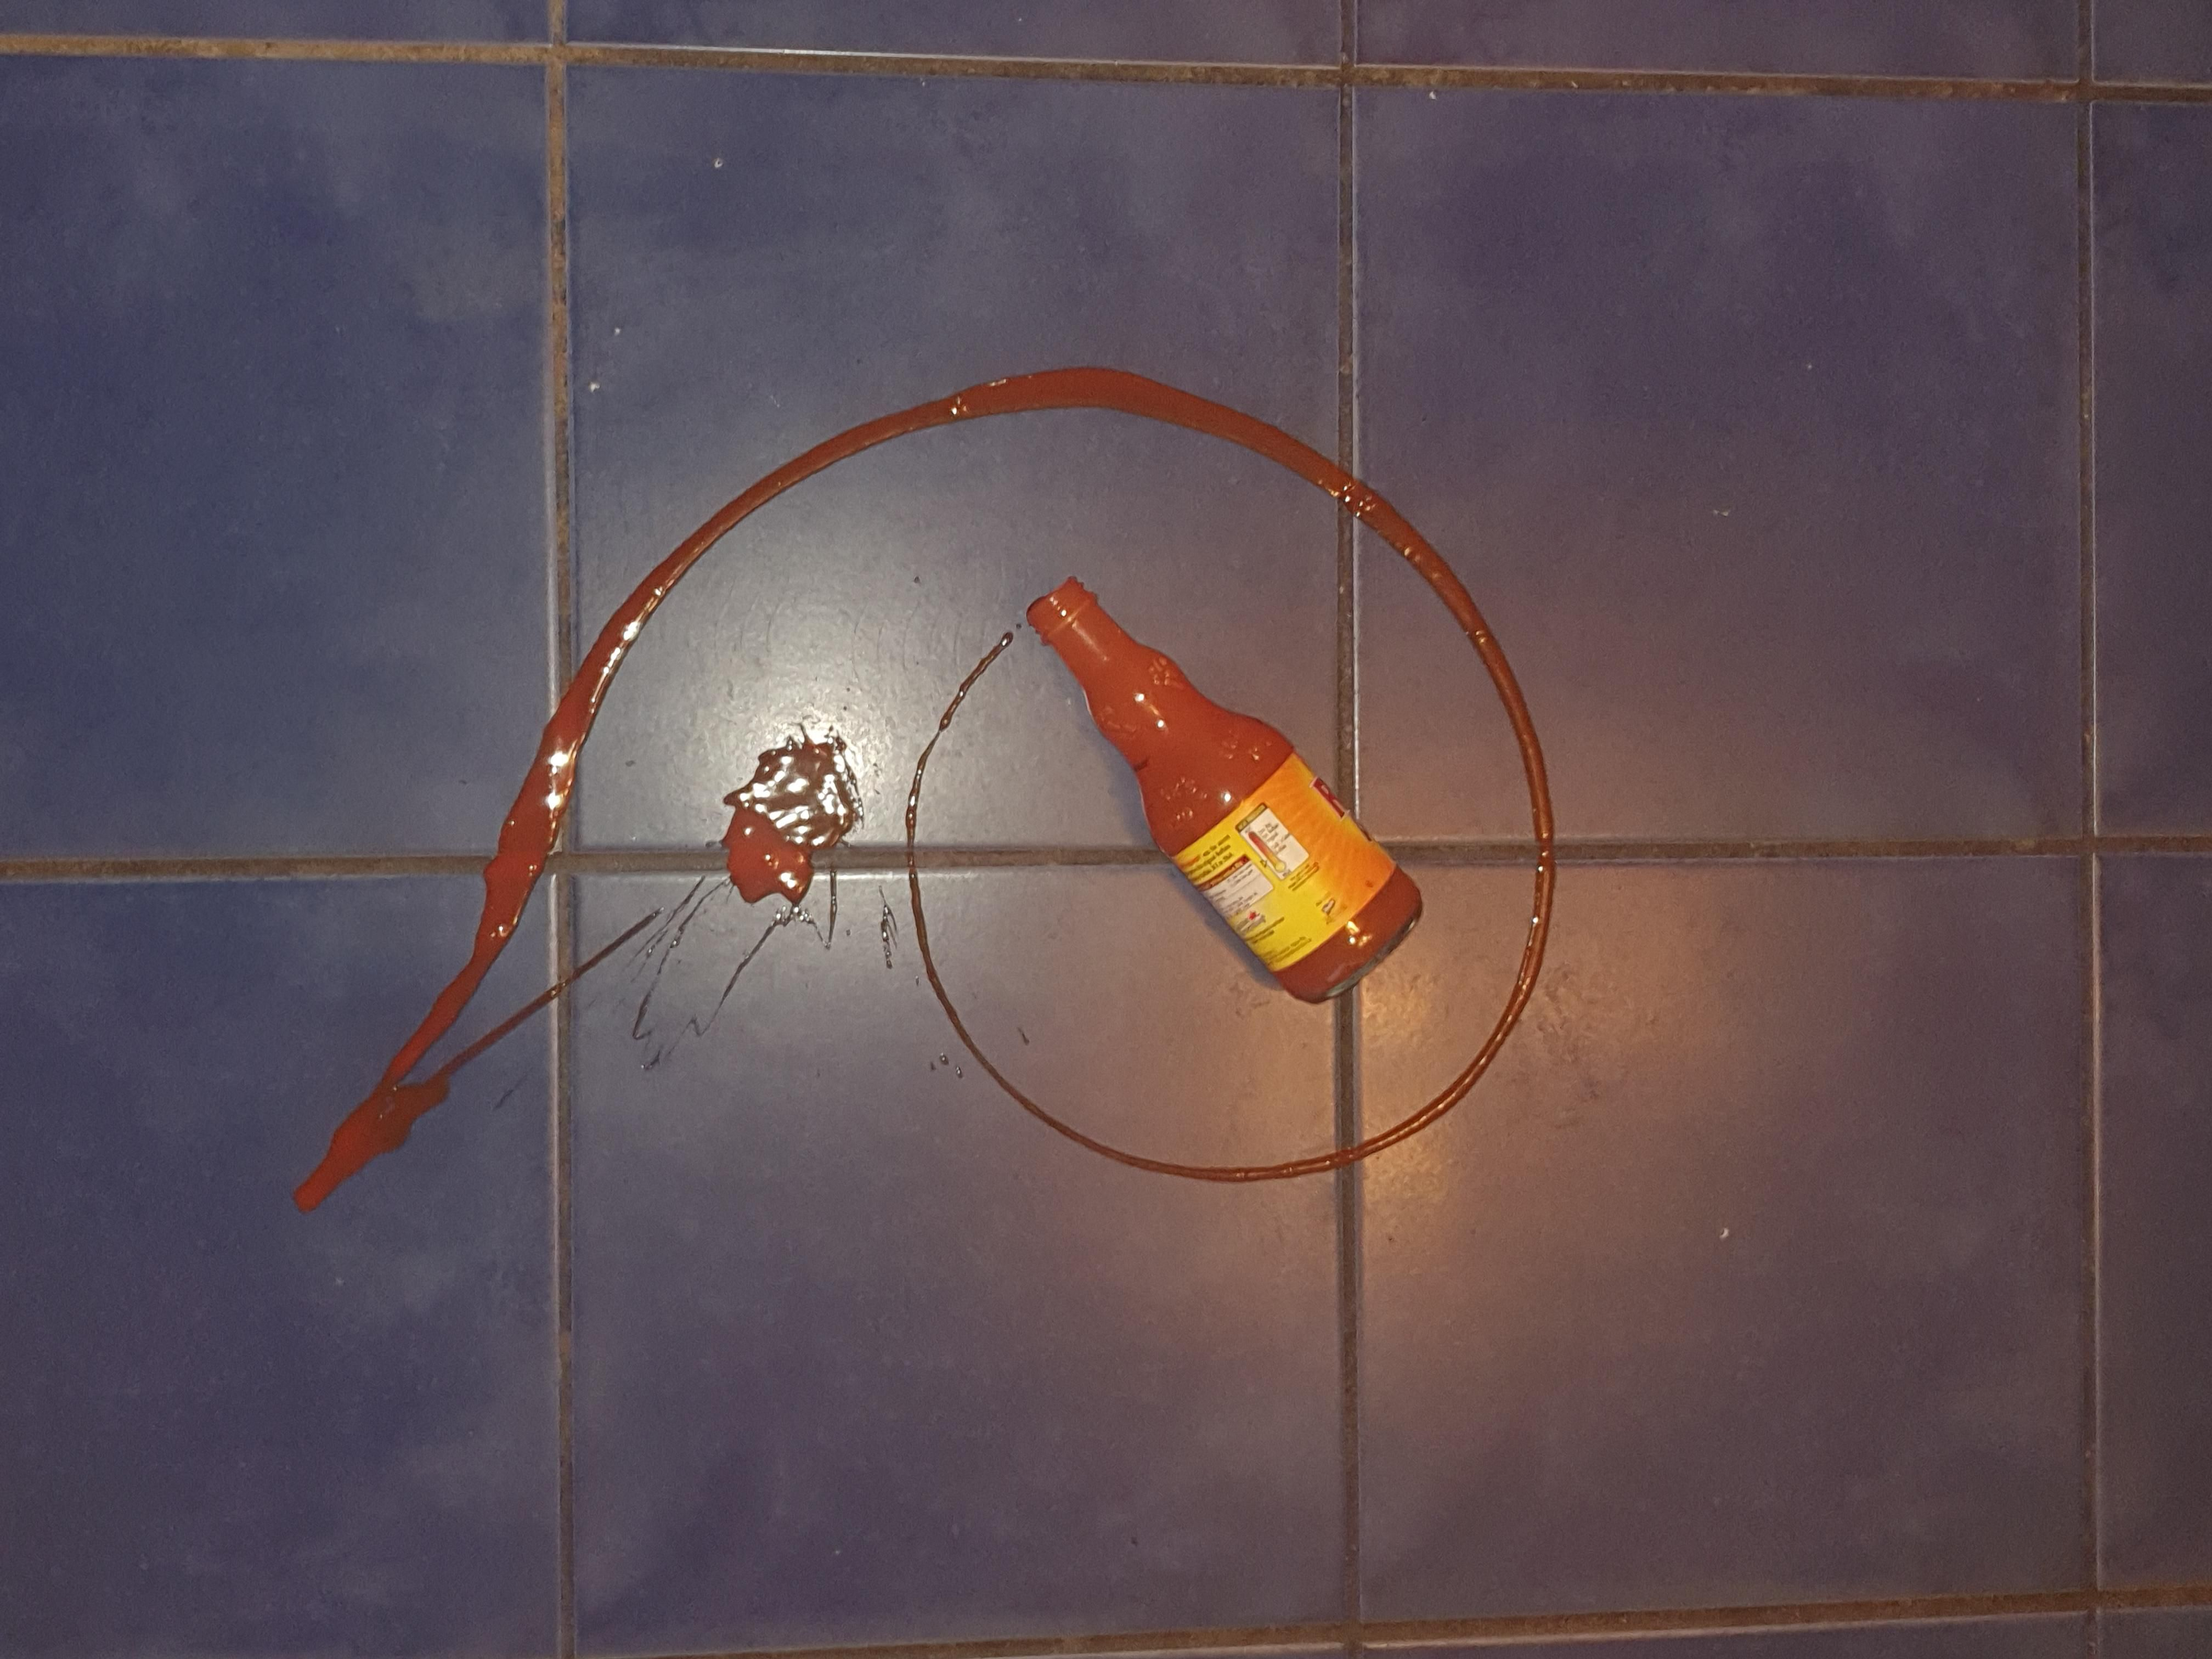 Dropped my bottle of Frank's hot sauce from the fridge and the spillage looks like the golden ratio. The universe is trying to tell me something.